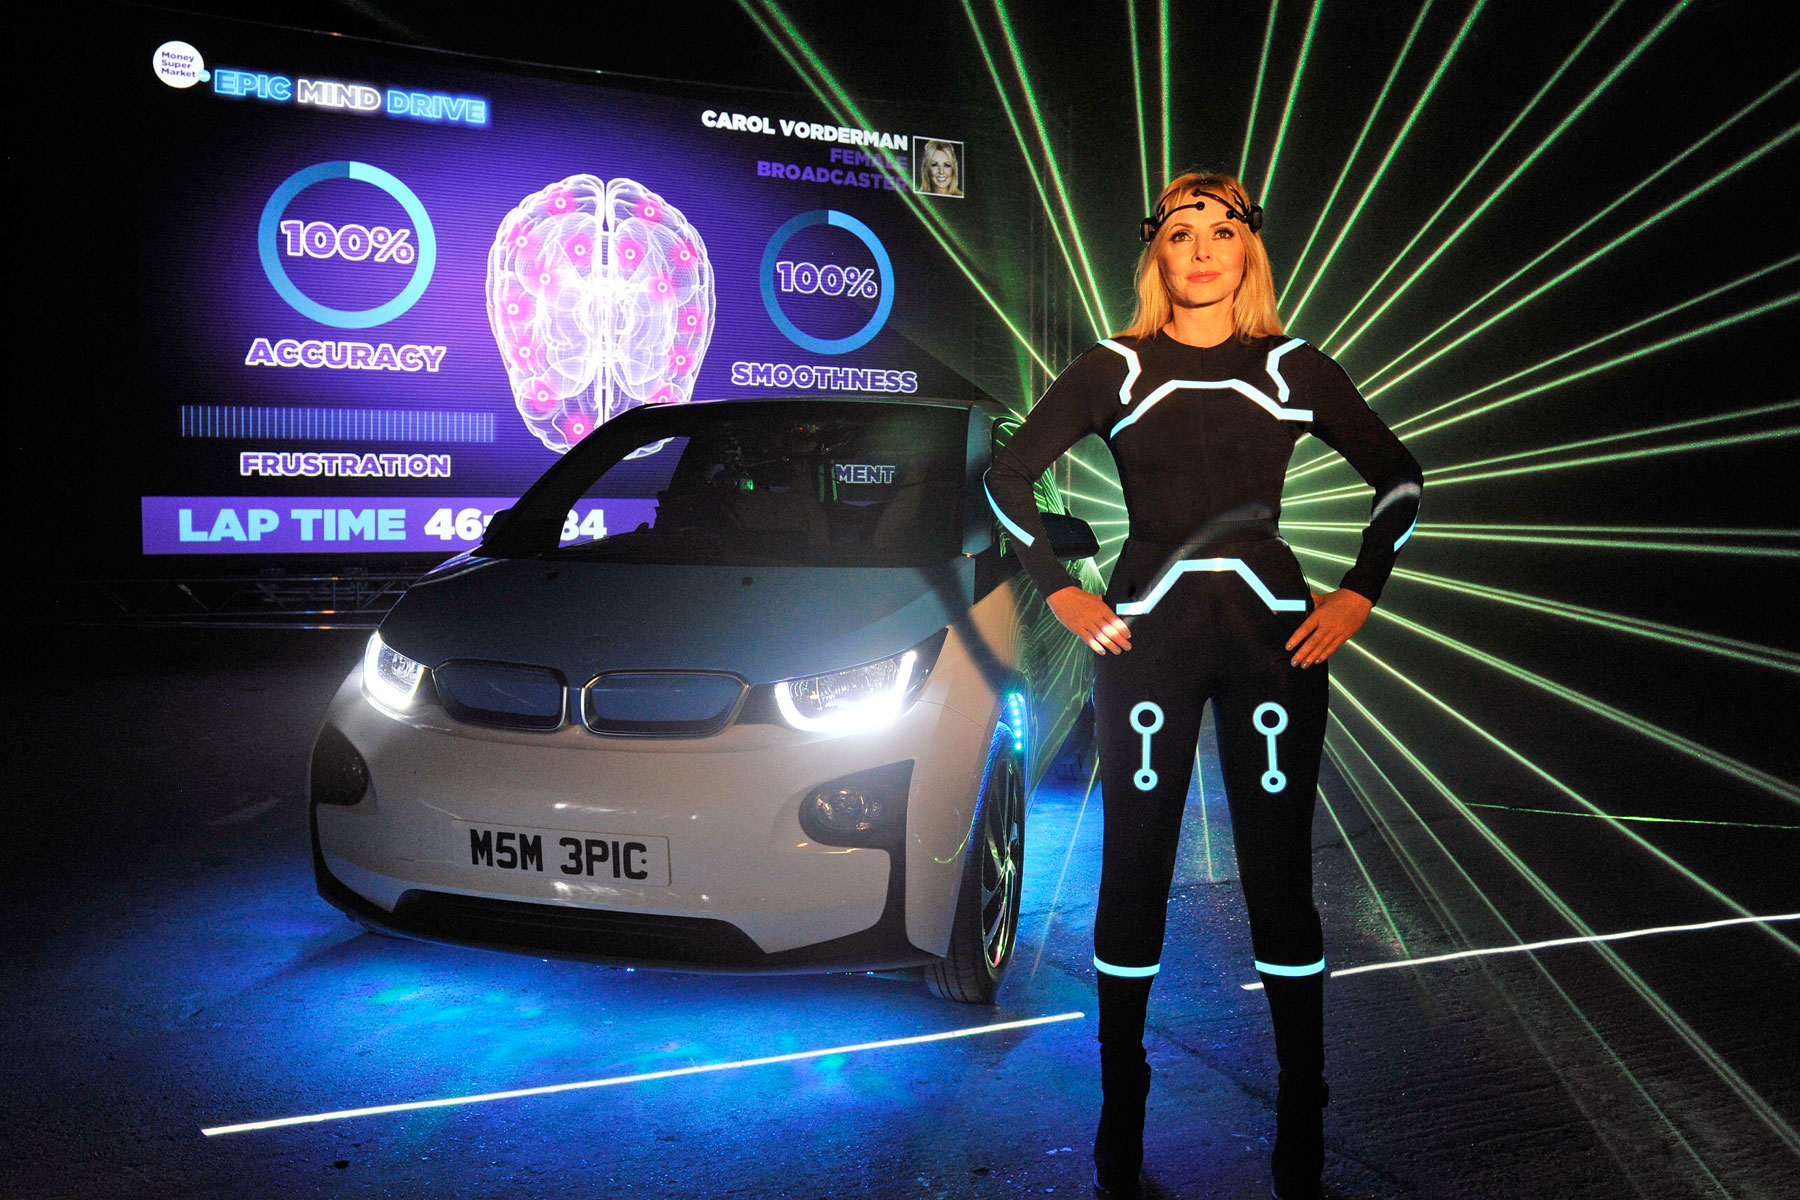 Carol Vorderman launches BMW i3 you can control with your MIND